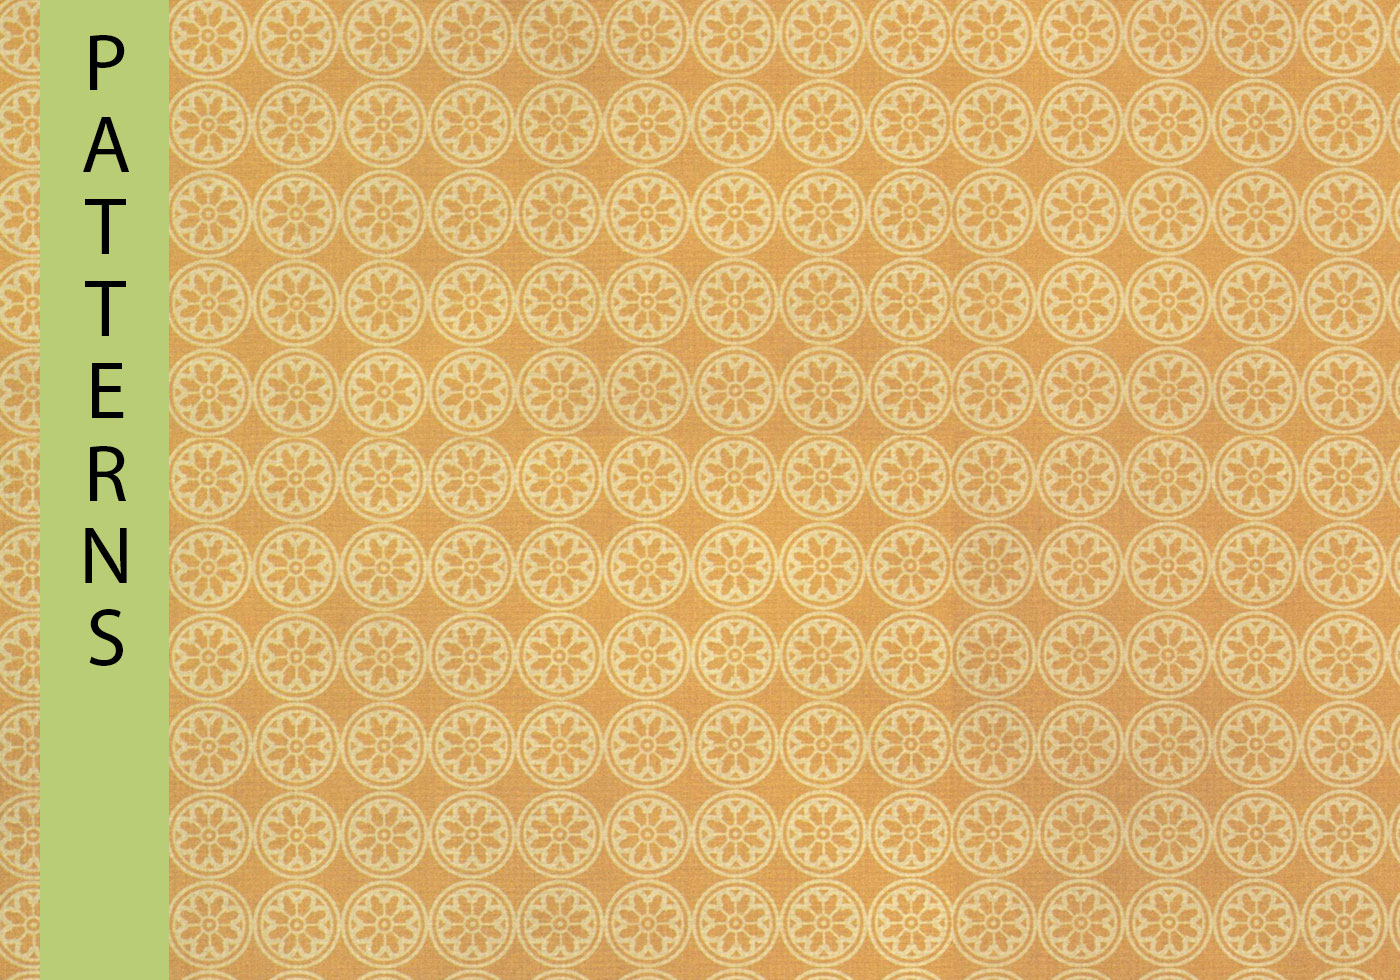 flower background images for photoshop